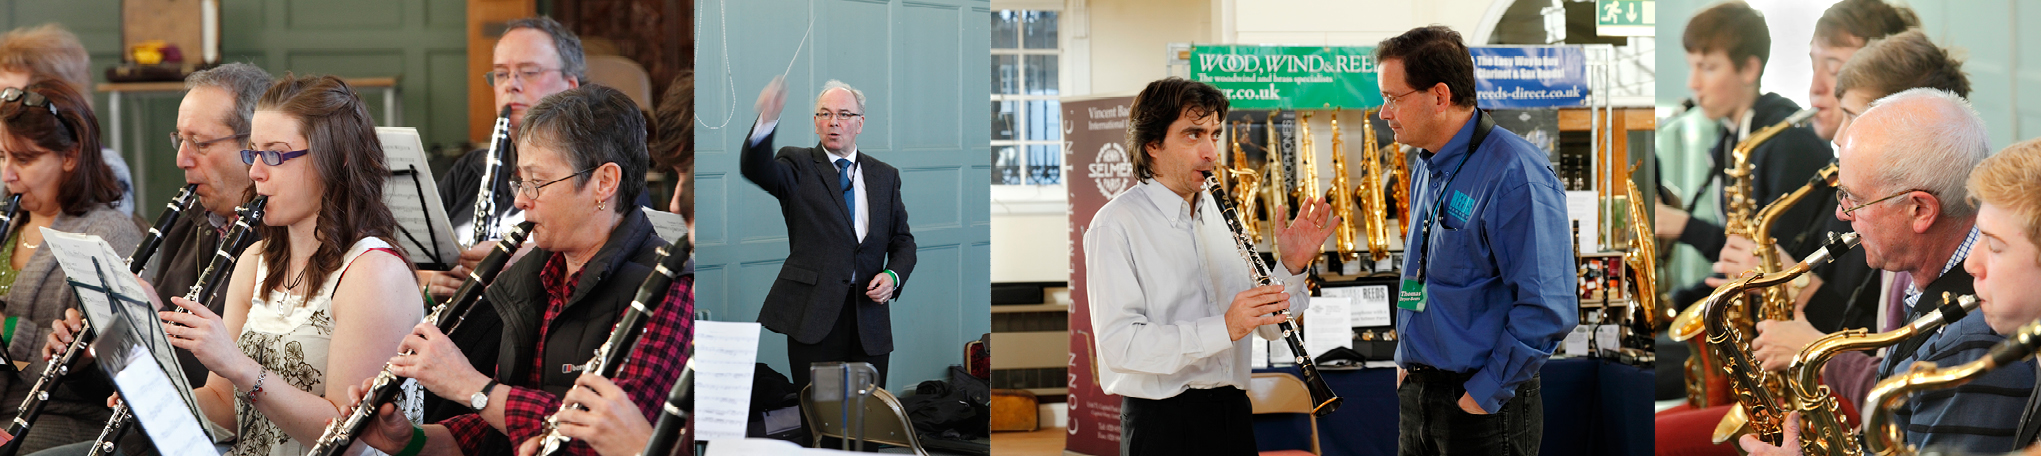 Clarinet and Saxophone Society Images;